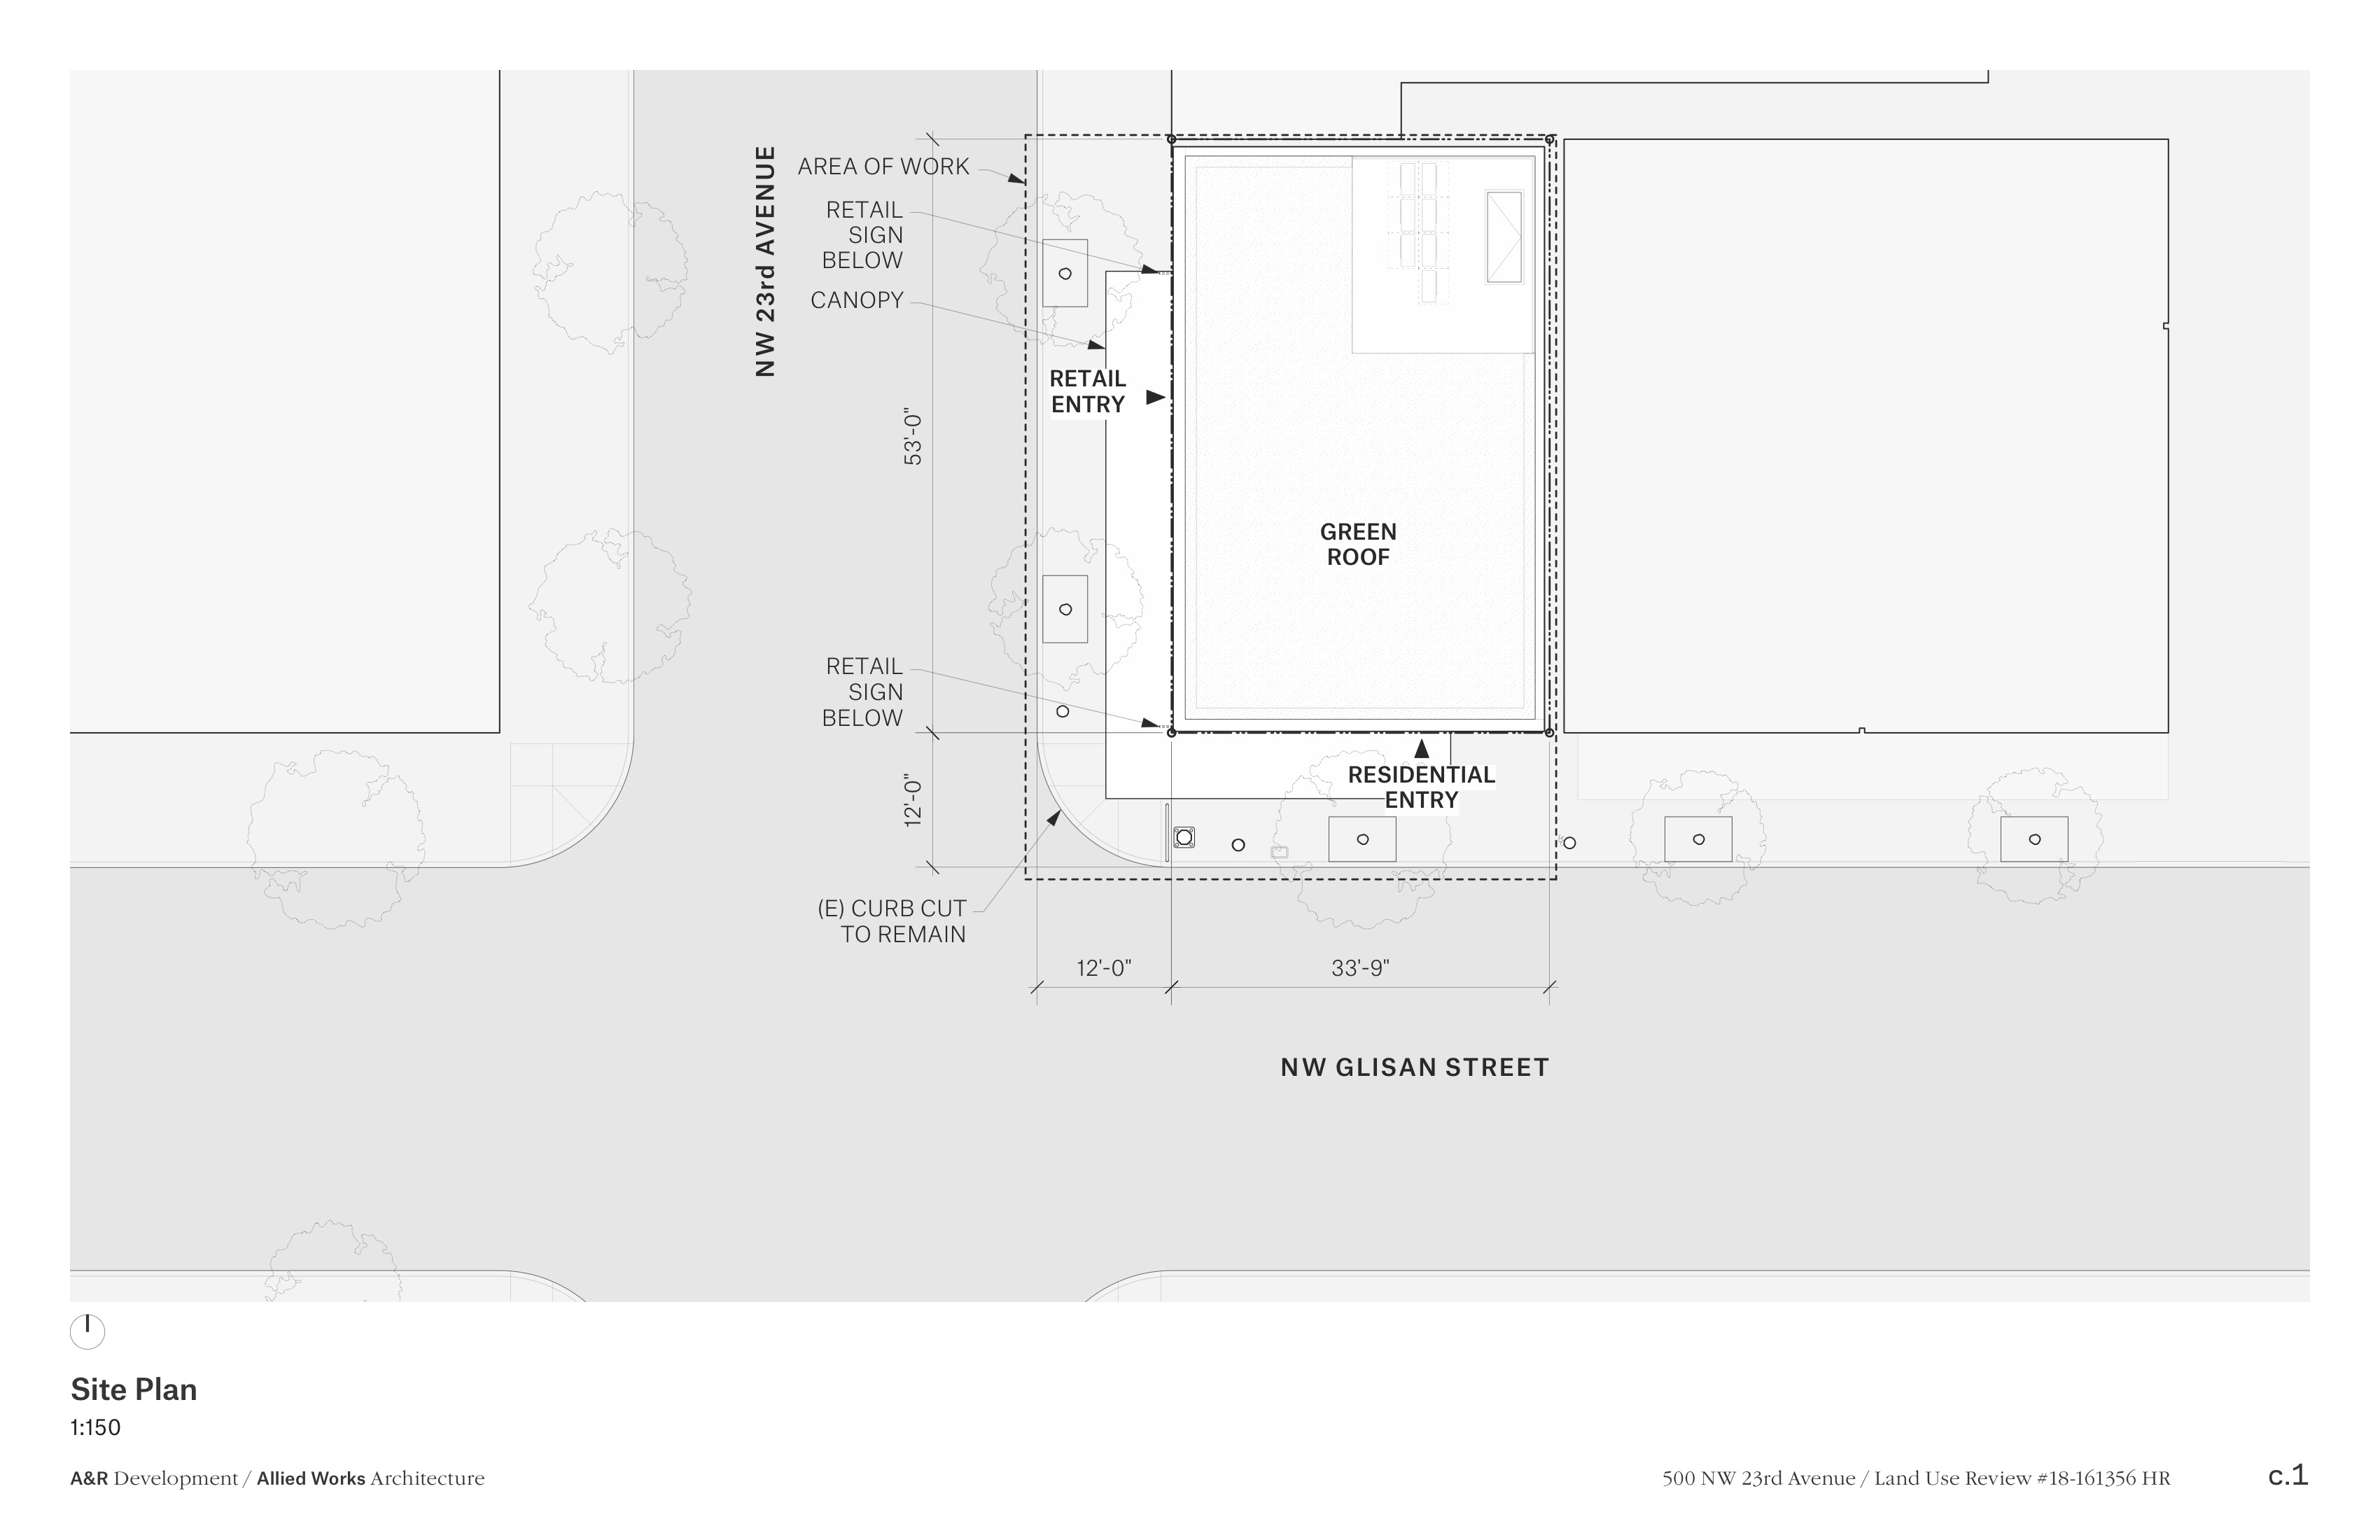 500 NW 23rd Ave - Allied Works Architecture